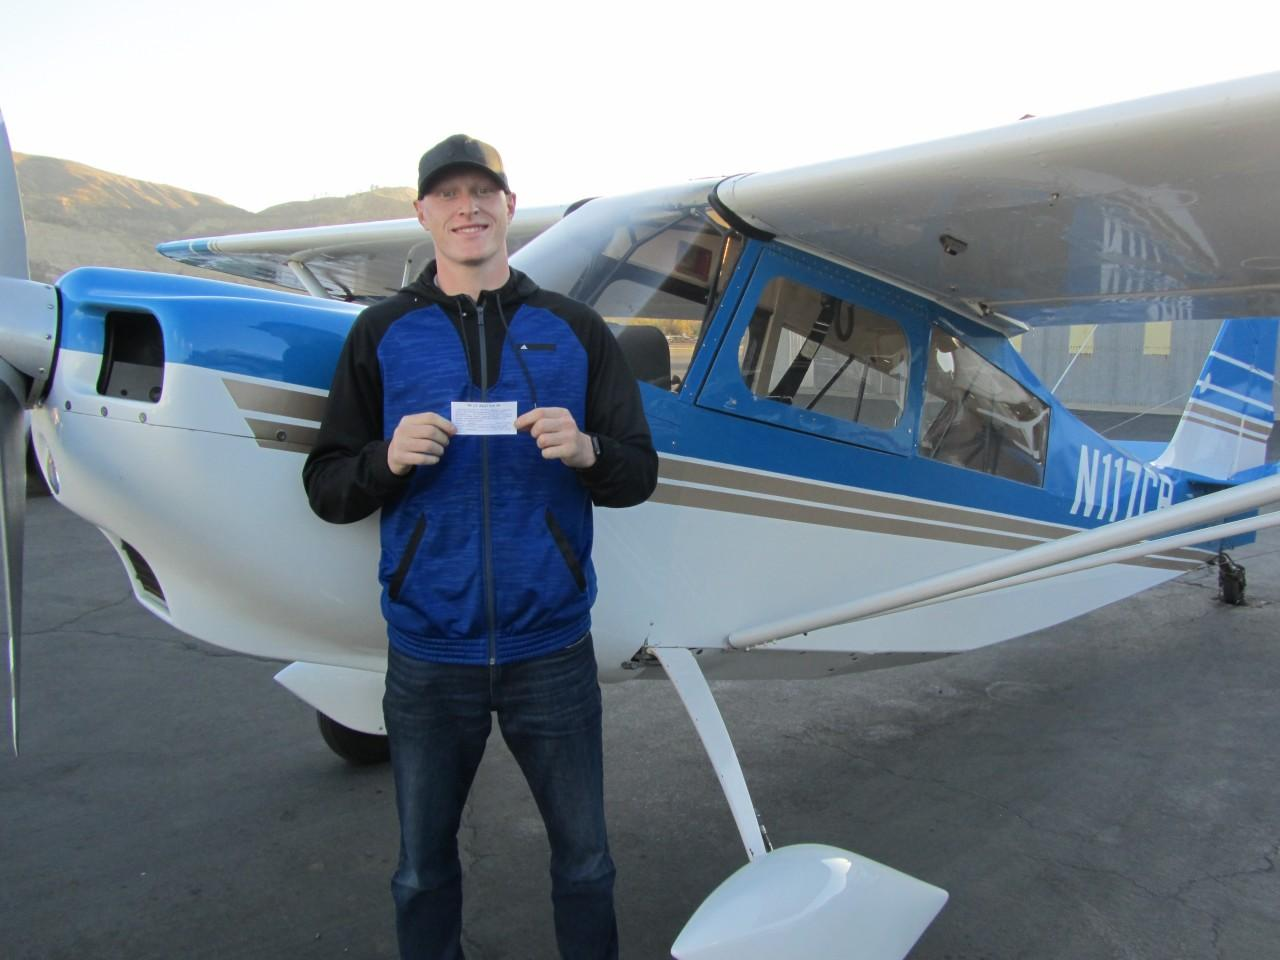 Tailwheel Endorsement - Devin Vainer!